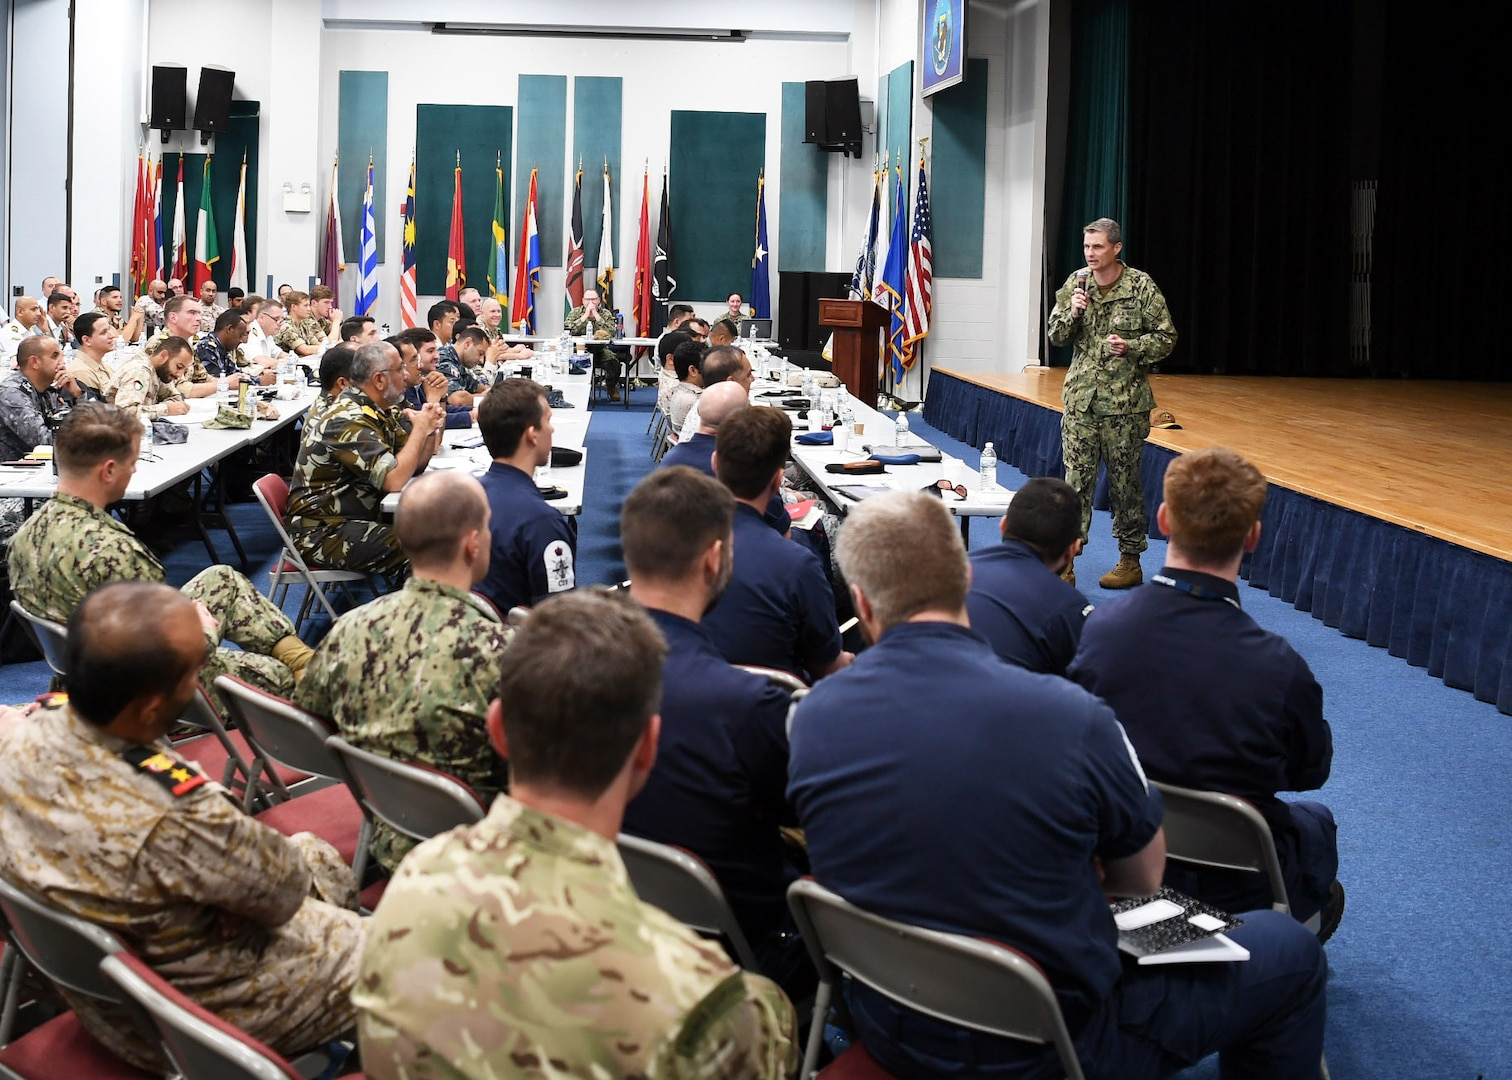 Rear Adm. Curt Renshaw, deputy commander, U.S. Naval Forces Central Command, addresses senior military leadership from countries participating in International Maritime Exercise (IMX) 19 during the IMX 19 final planning conference. IMX 19 is the world's most inclusive maritime exercise, designed to strengthen relationships, foster interoperability among supporting forces, and enhance maritime security operations, mine countermeasures (MCM), and maritime infrastructure capabilities in the U.S. 5th Fleet area of operations. (U.S. Navy photo by Mass Communication Specialist 1st Class Jason Abrams/Released)